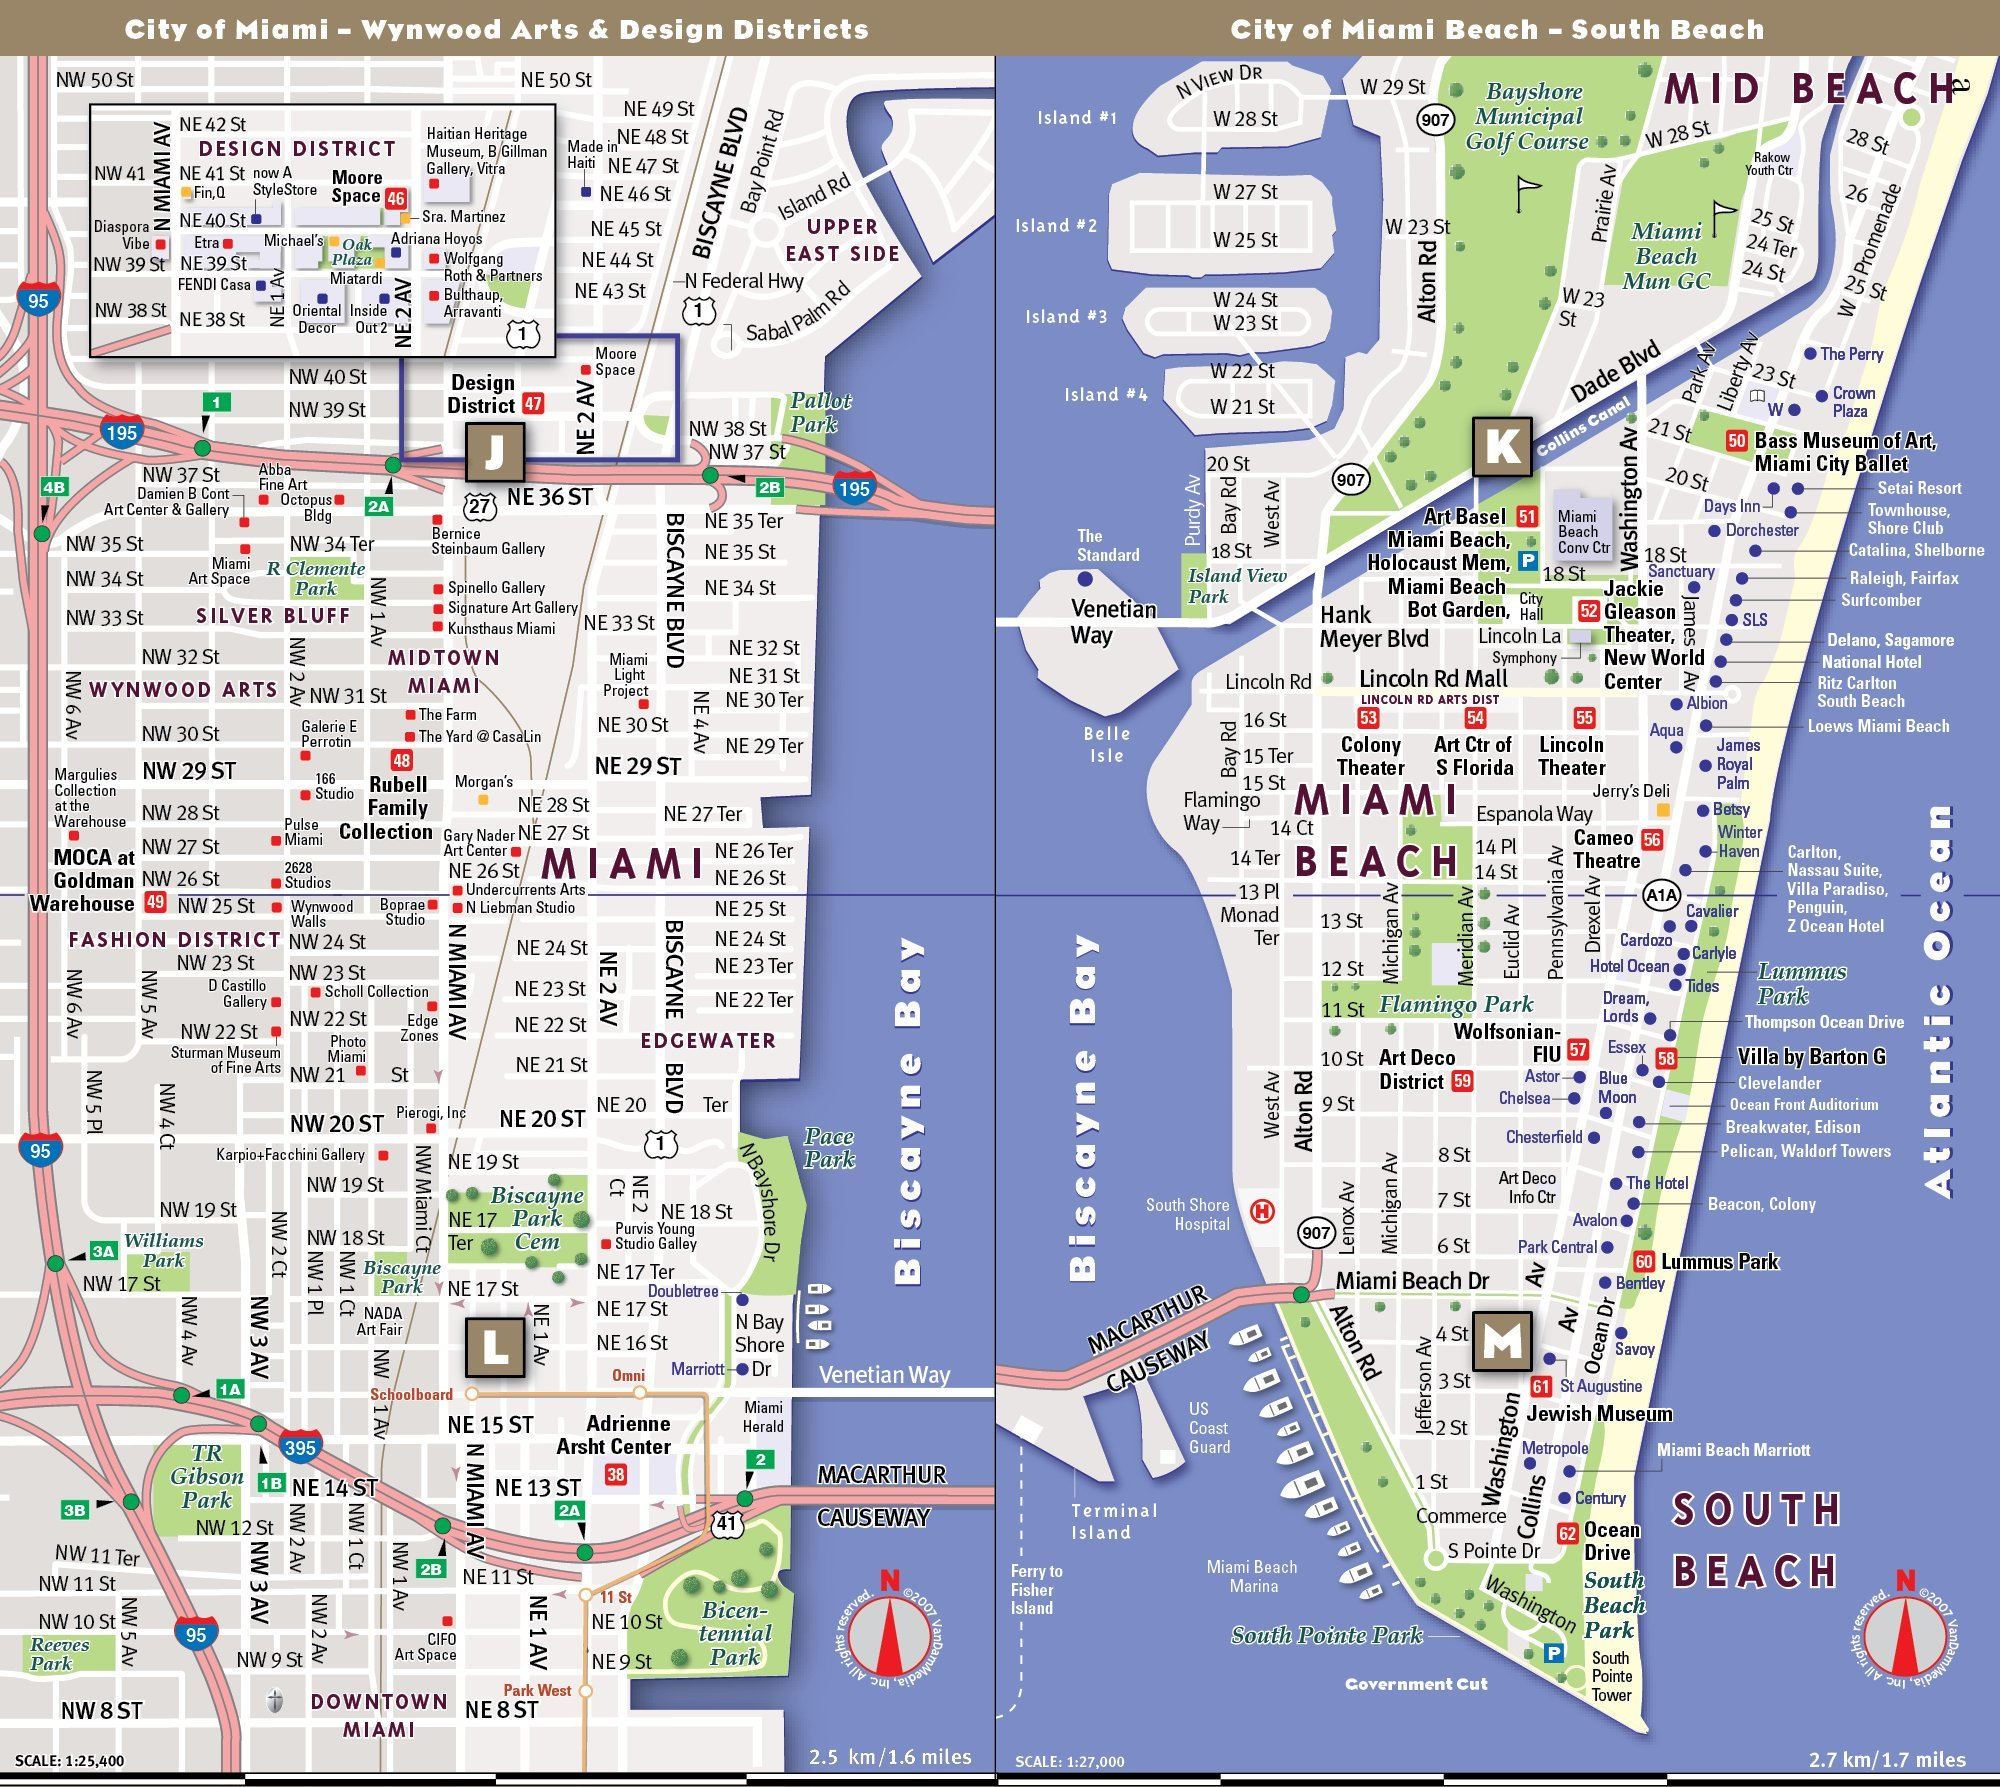 StreetSmart Cuba Map Pack by VanDam - Maps of Cuba, Havana & Miami -  Laminated folding pocket size country travel guides with detailed city  street maps ...